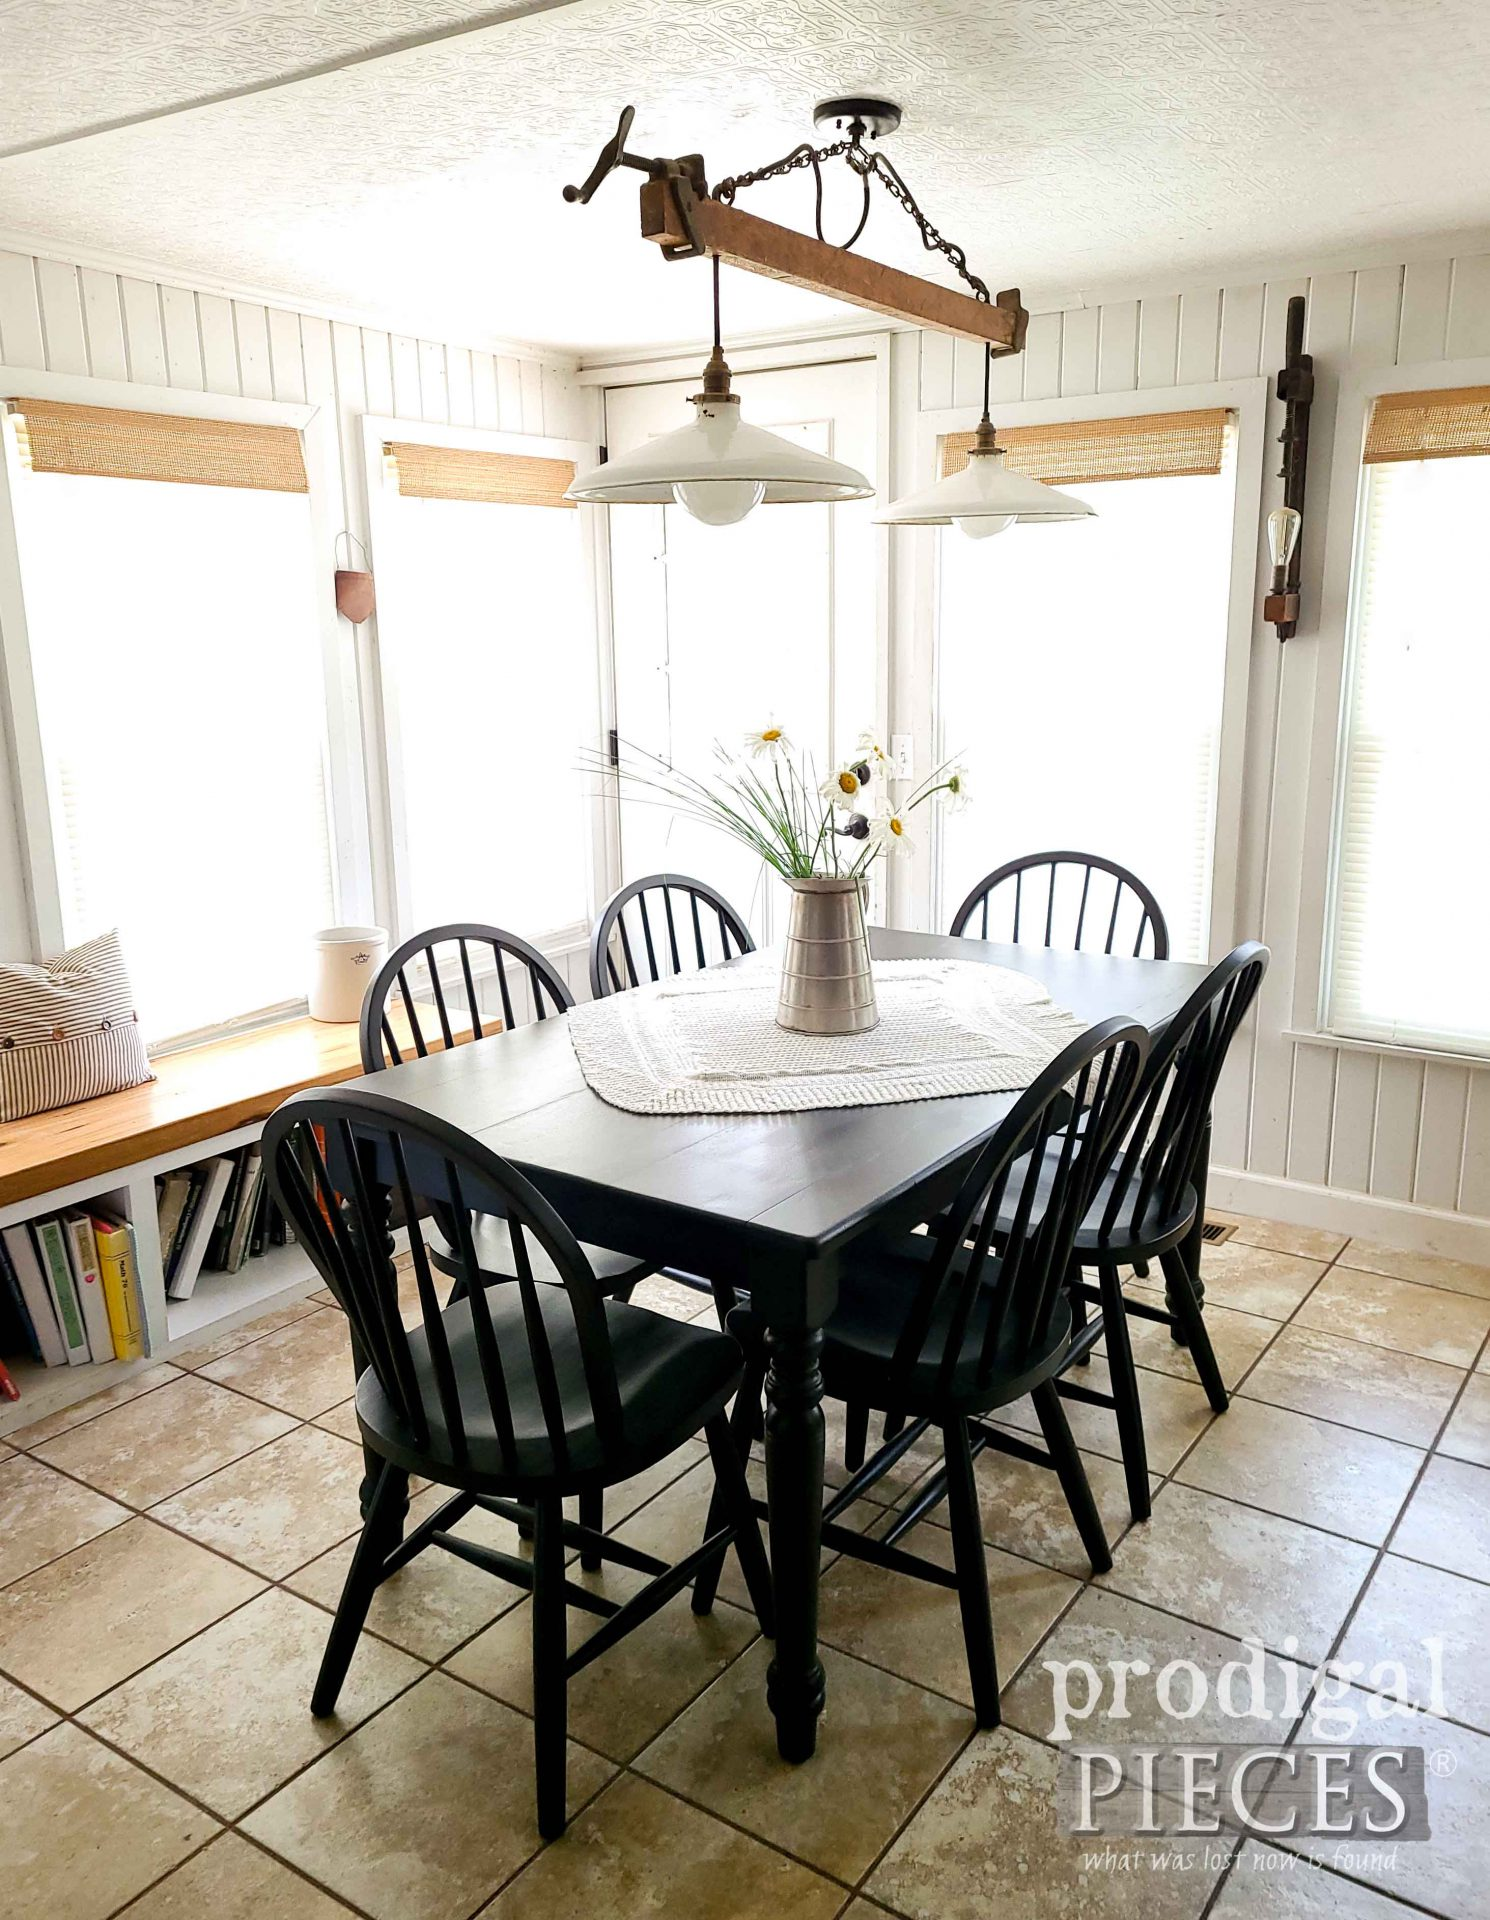 DIY Farmhouse Dining Decor with Windsor Chairs by Larissa of Prodigal Pieces | prodigalpieces.com #prodigalpieces #dining #table #furniture #farmhouse